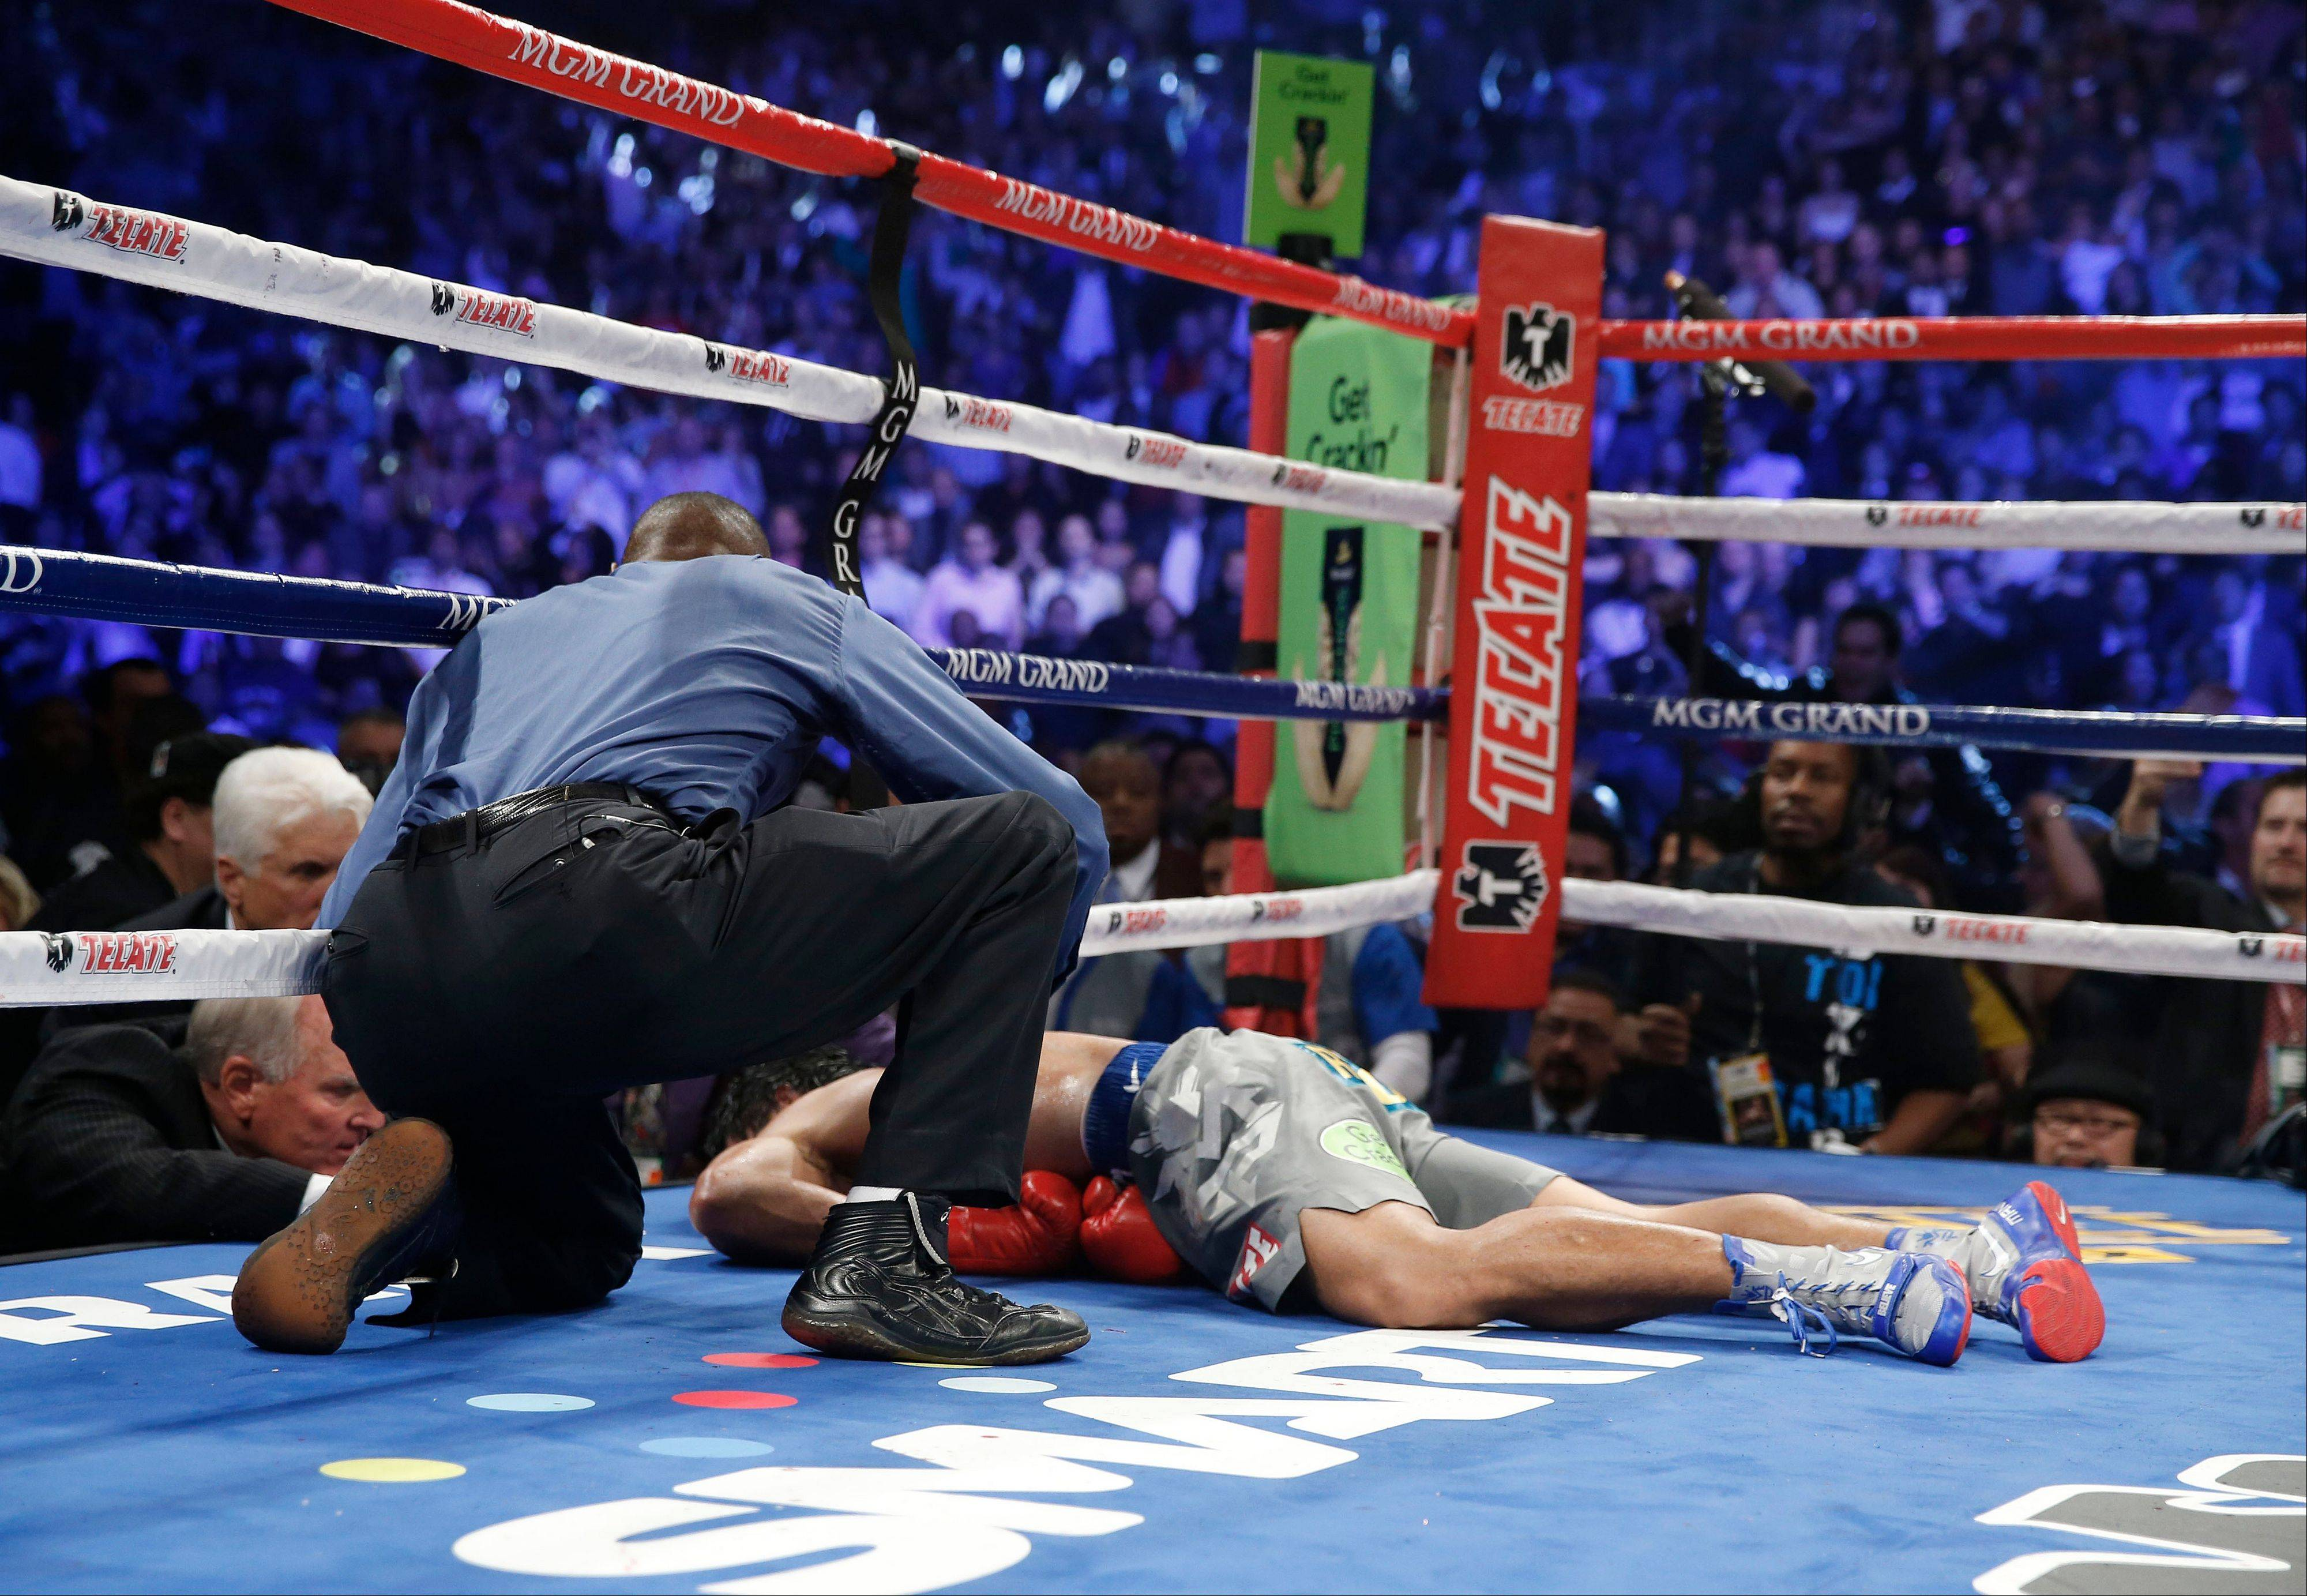 Manny Pacquiao, from the Philippines, lies on the canvas as referee Kenny Bayless kneels nearby after being knocked out by Juan Manuel Marquez, from Mexico, in the sixth round.